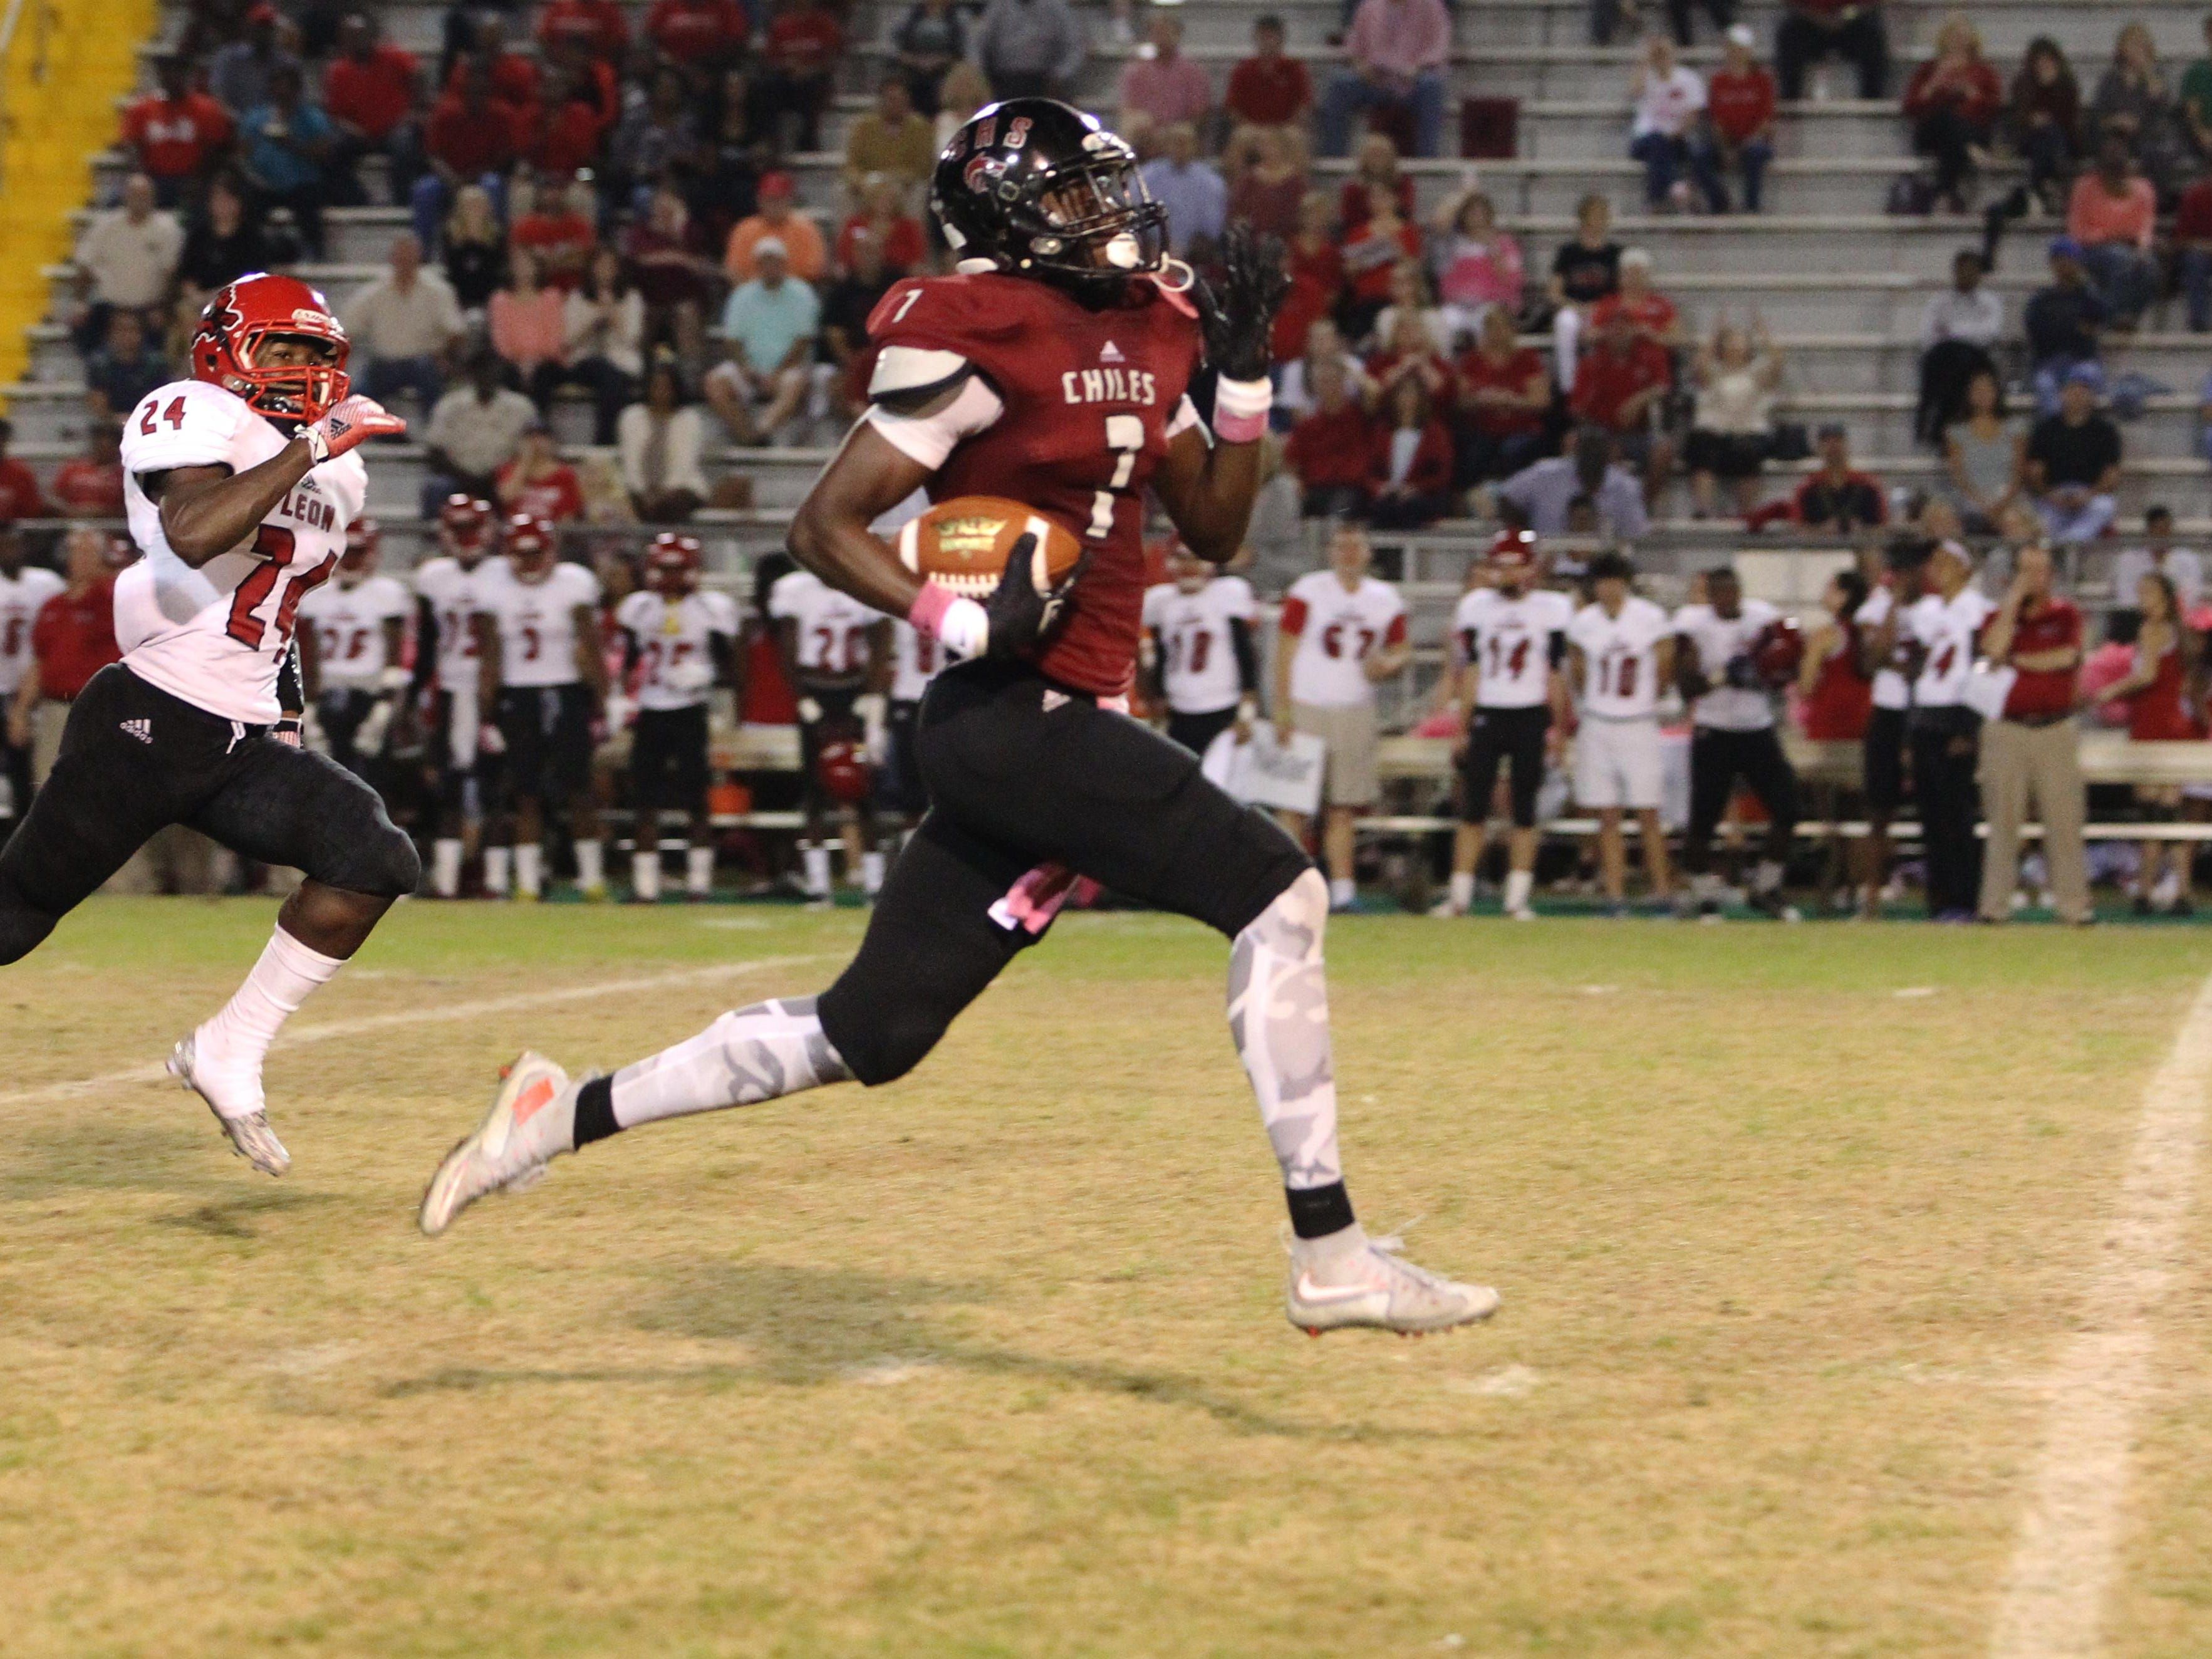 Chiles receiver John Mitchell sprints for an 80-yard touchdown as part of his 4-catch, 156-yard night, however, the Timberwolves were upended by Leon, 22-21, on a game-winning touchdown with 28 seconds left.